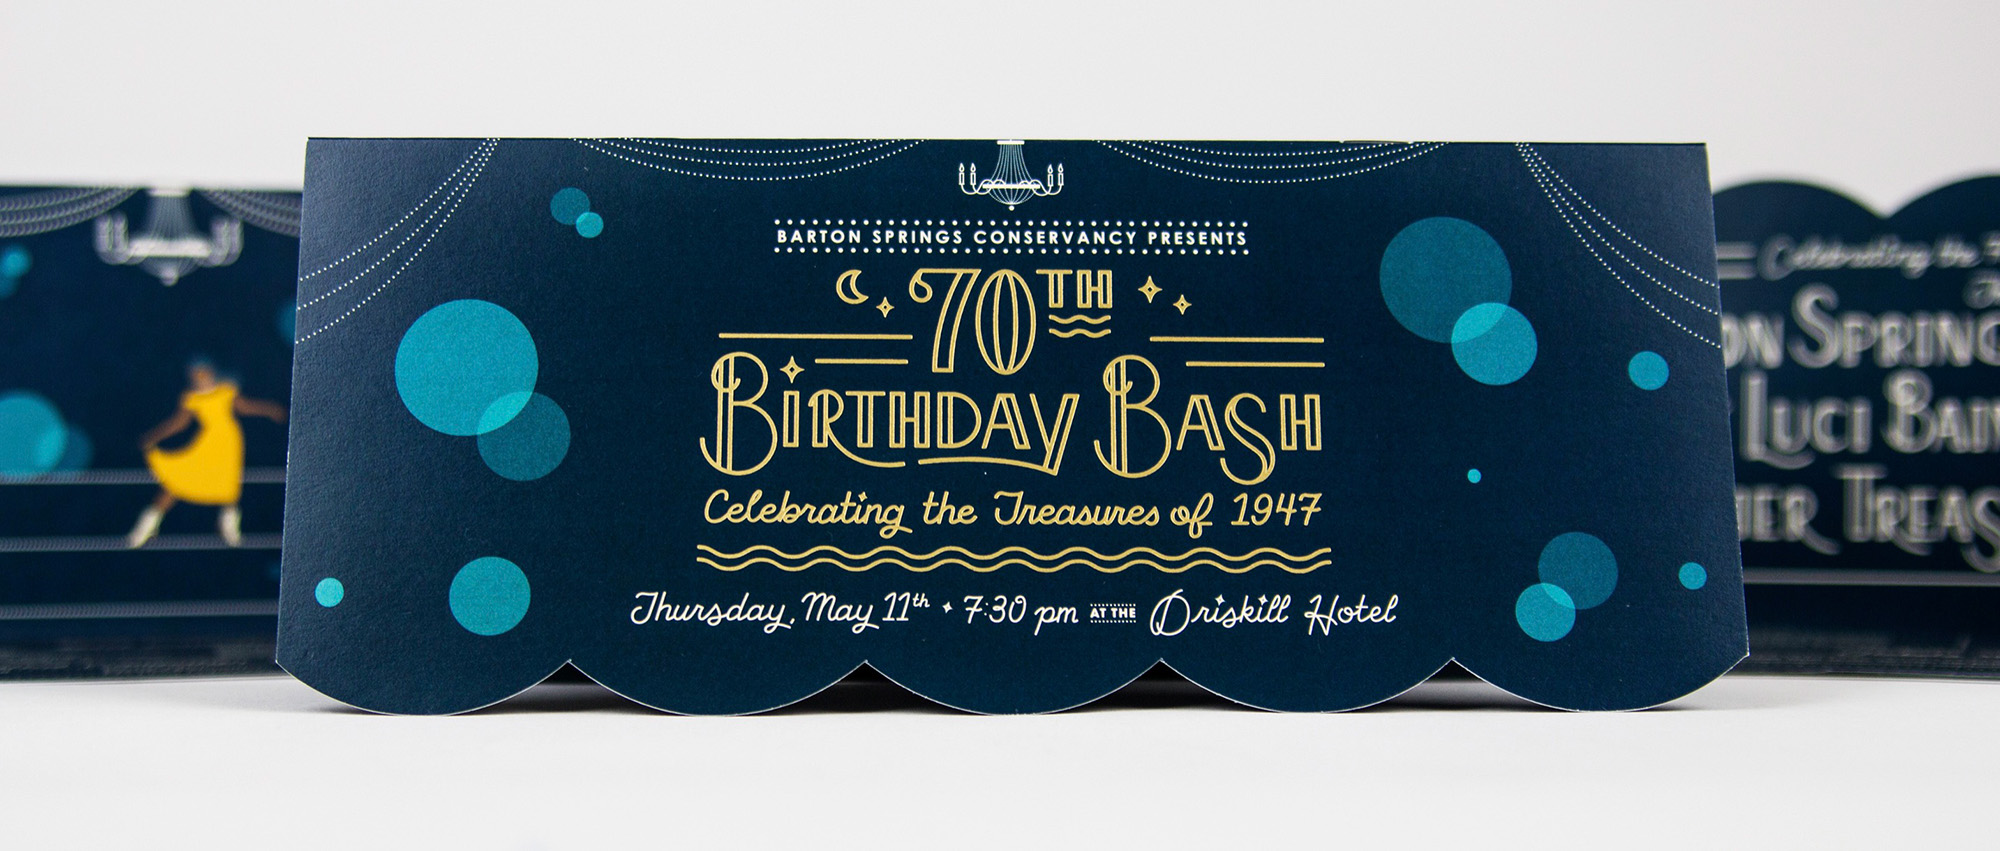 The front of a fundraiser invitation for Bartons Springs' 70th Birthday Bash.